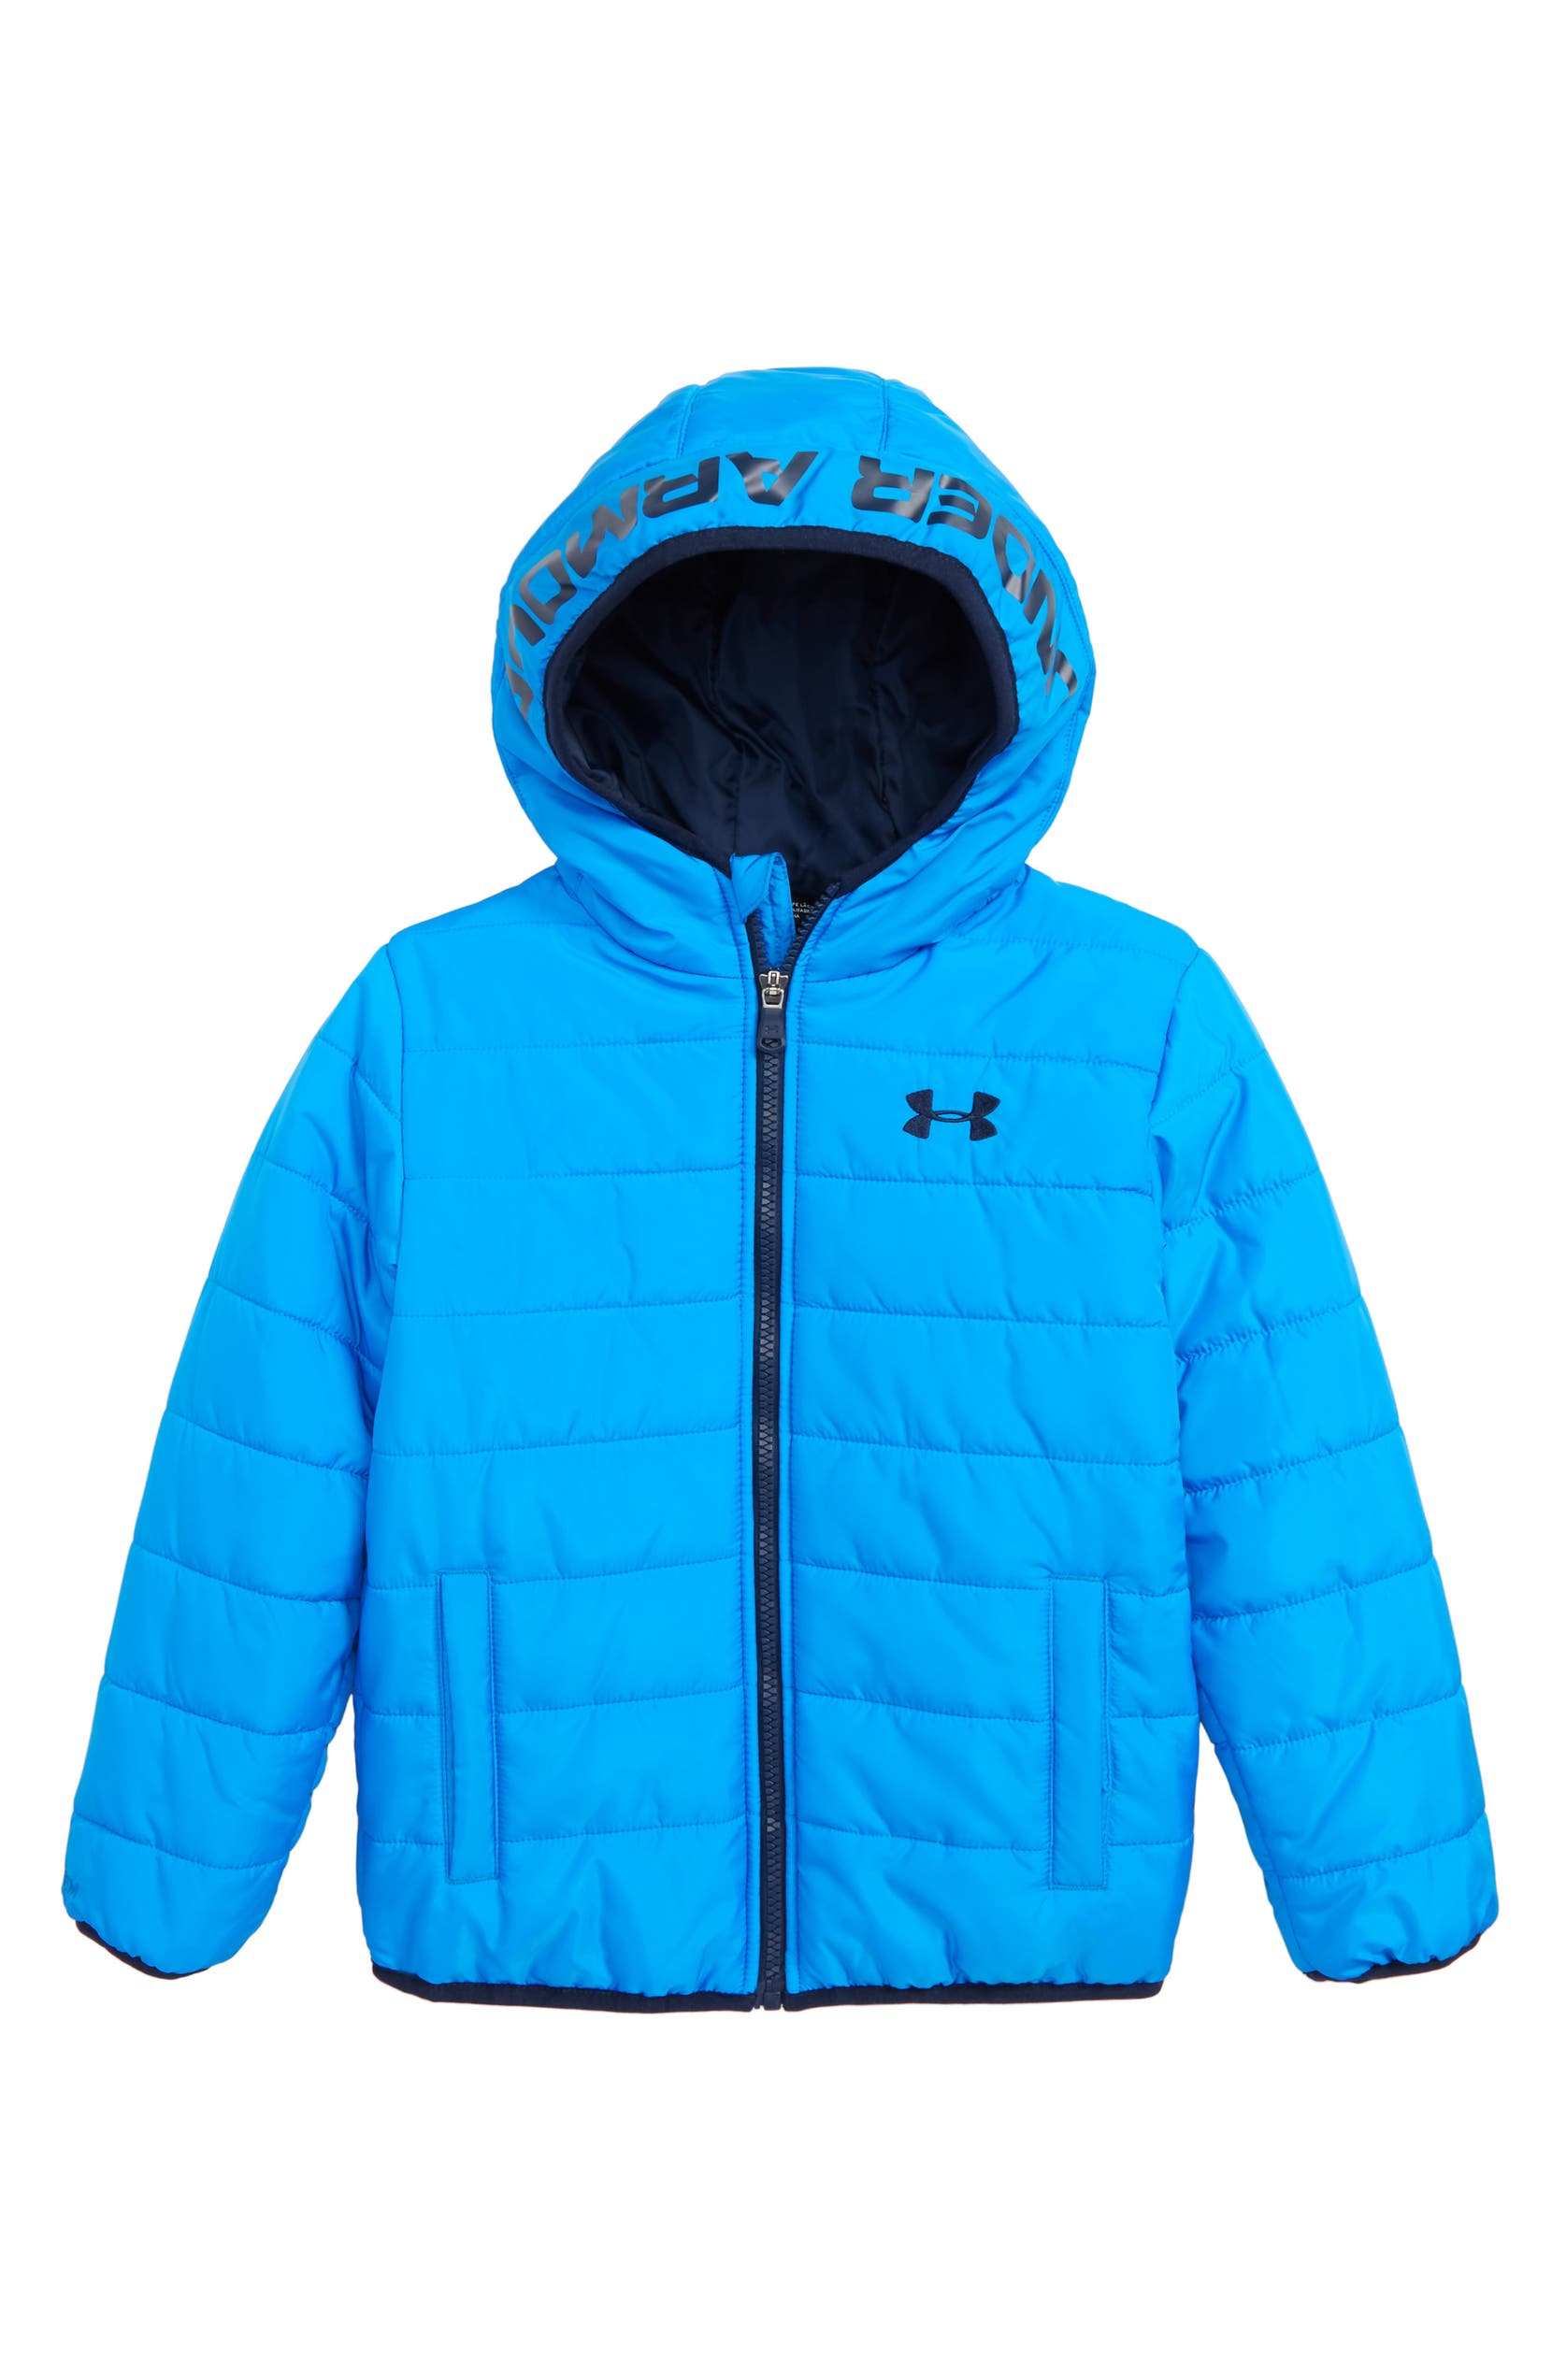 745b7d41 Under Armour Pronto Water Repellent Hooded Puffer Jacket (Toddler ...